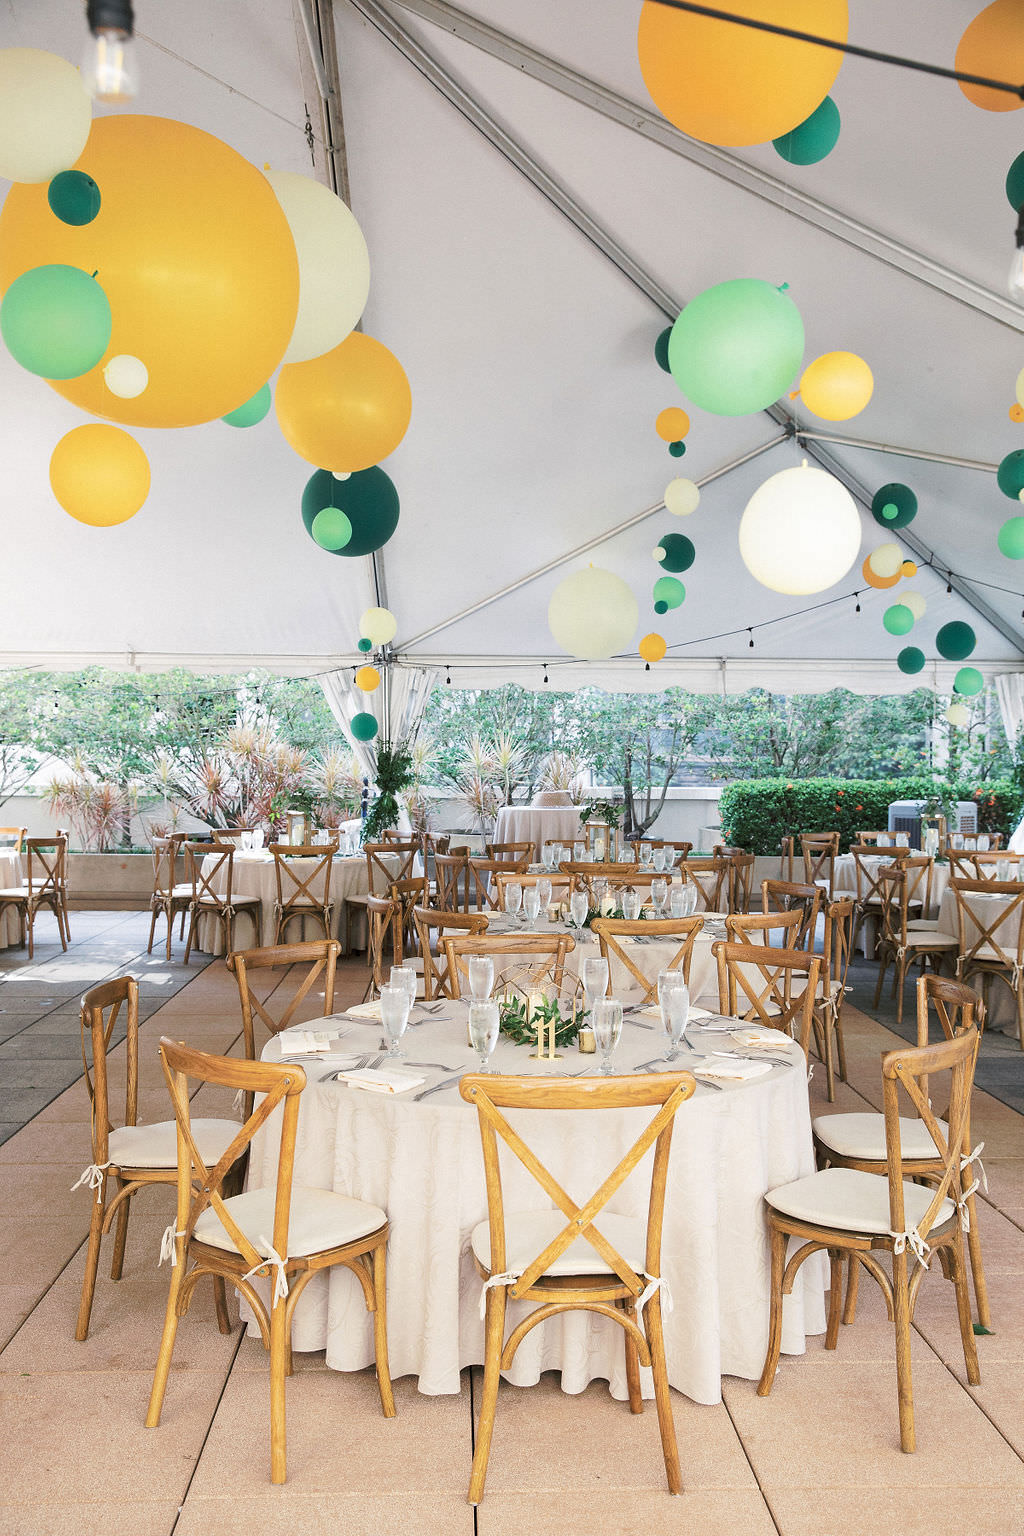 Whimsical Rustic Elegant Tent Wedding Reception Decor, Round Tables with Ivory Linens, Wooden Crossback Chairs, Green, Yellow and White Hanging Balloons | Tampa Bay Wedding Venue The Epicurean Hotel